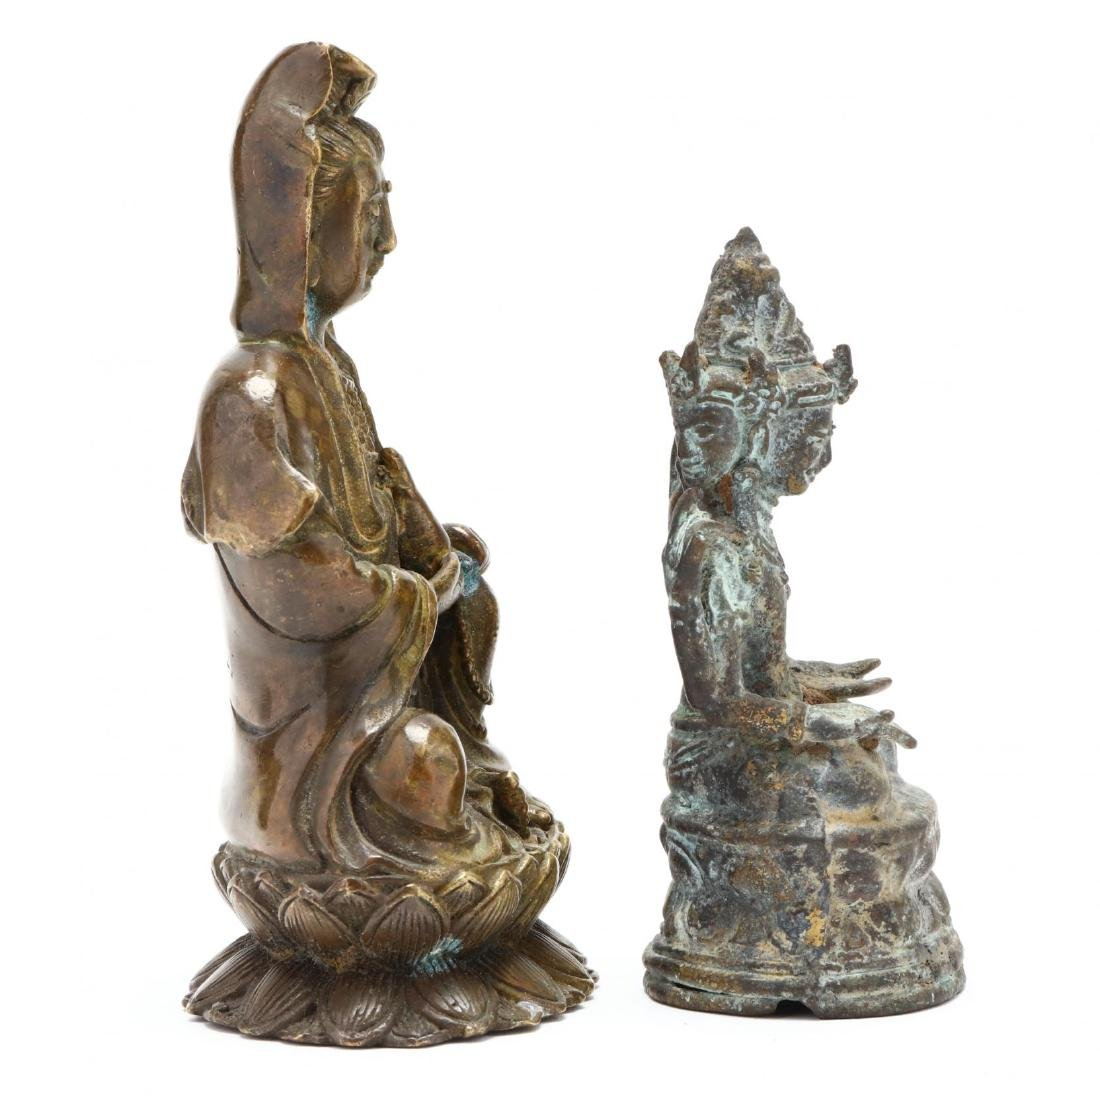 A Three Headed Indian Bronze Sculpture and Bronze - 3